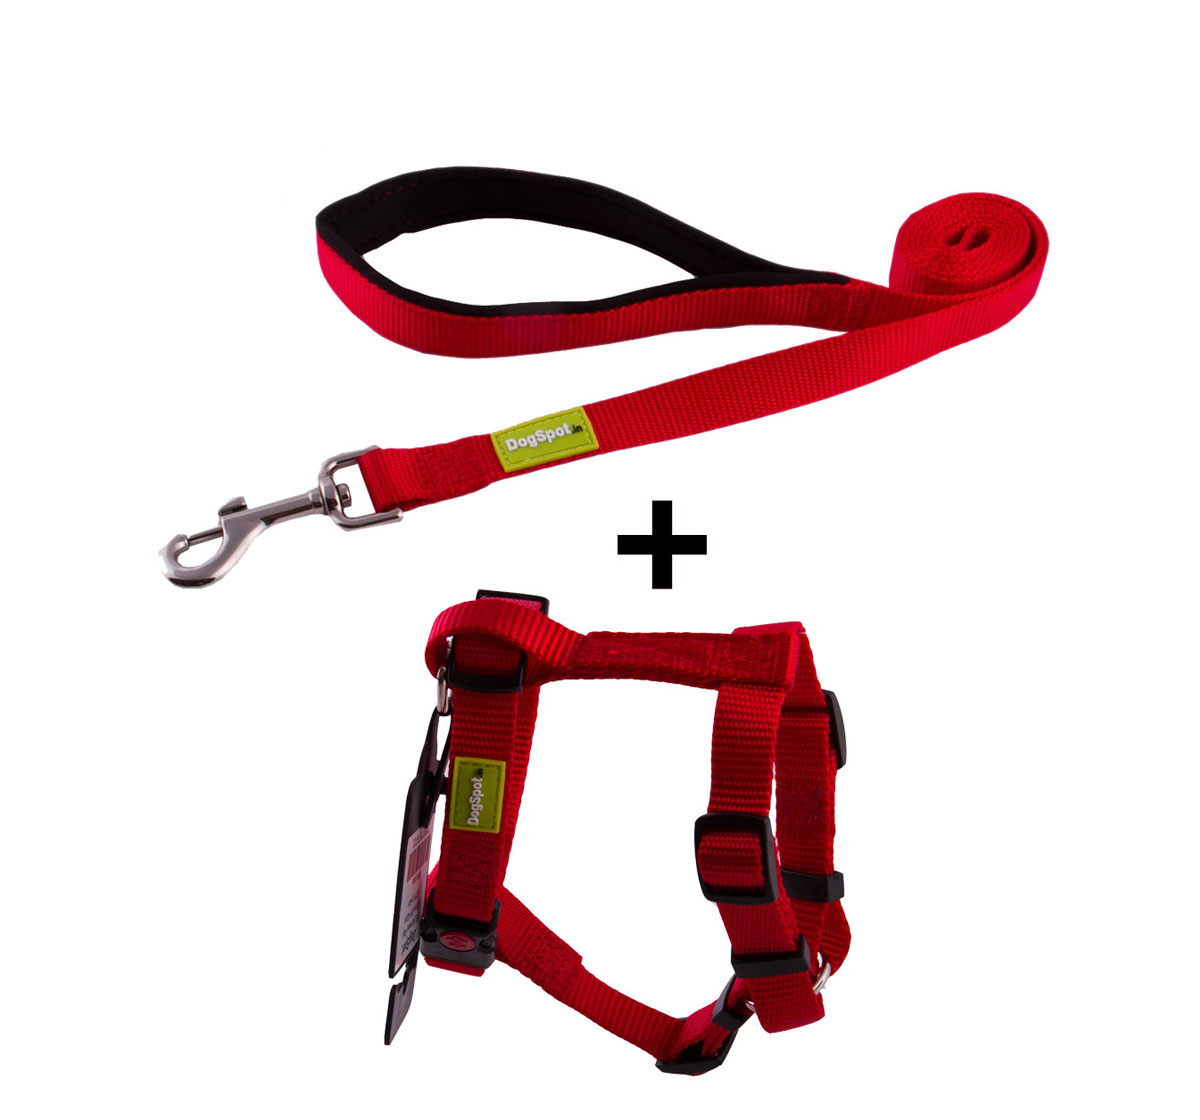 DogSpot Premium Leash and Harness Set Red 15 mm - Small